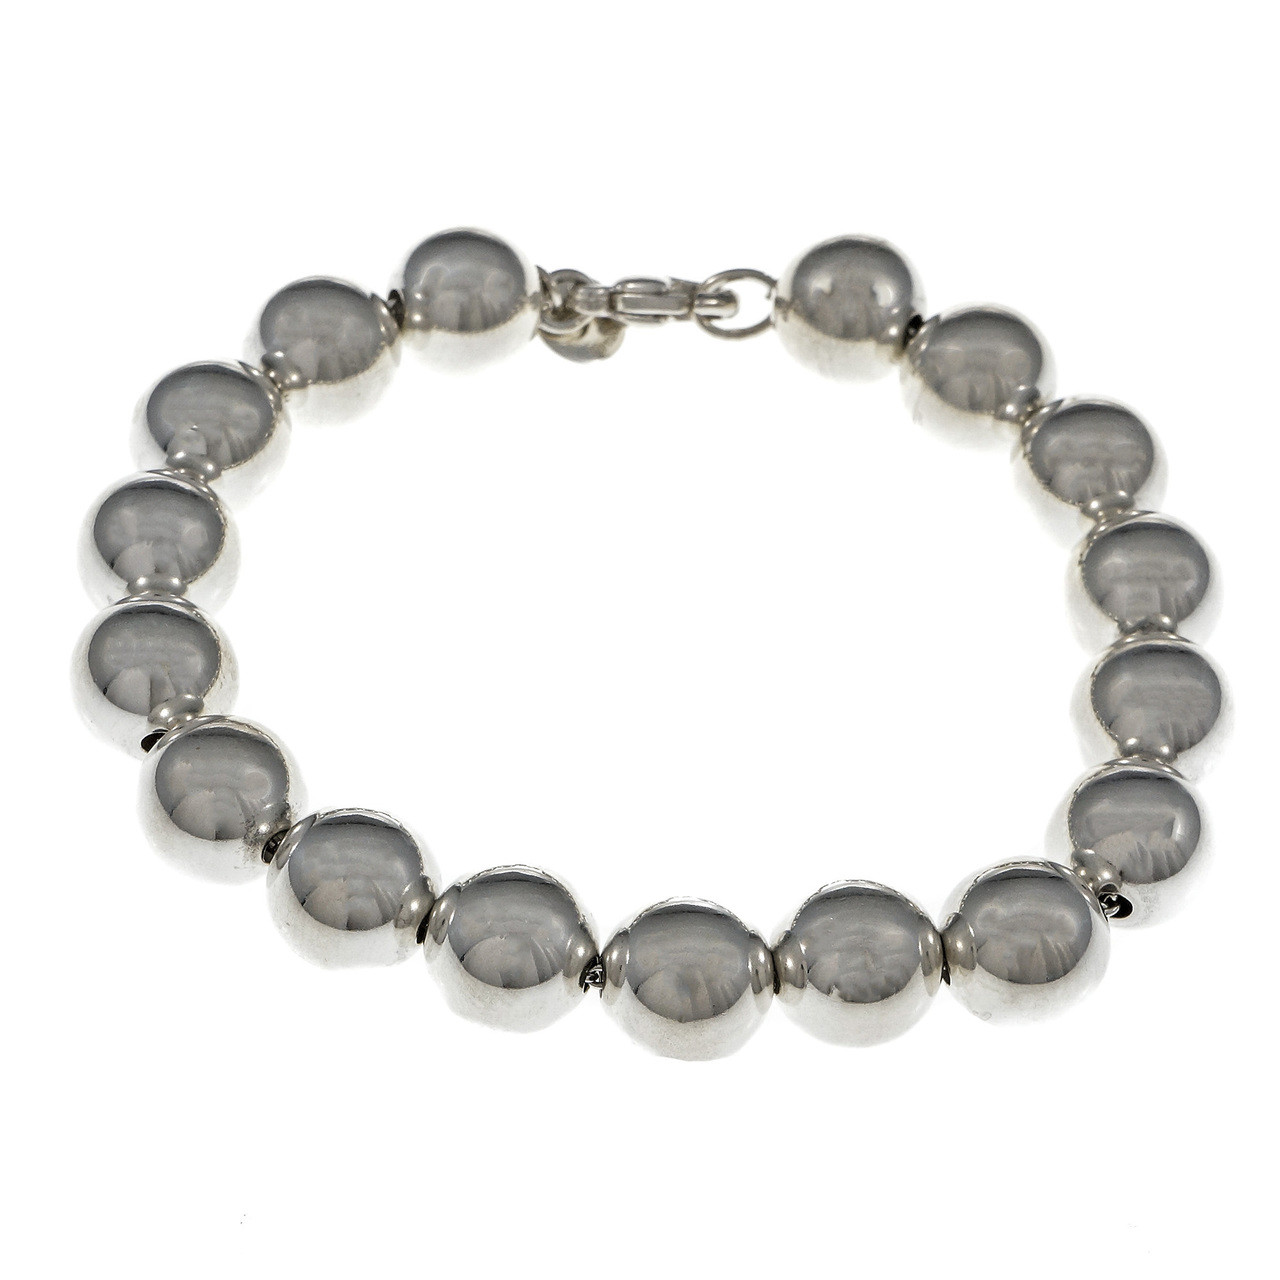 f299607b9 Tiffany & Co Bead Bracelet Sterling Silver 10mm - petersuchyjewelers